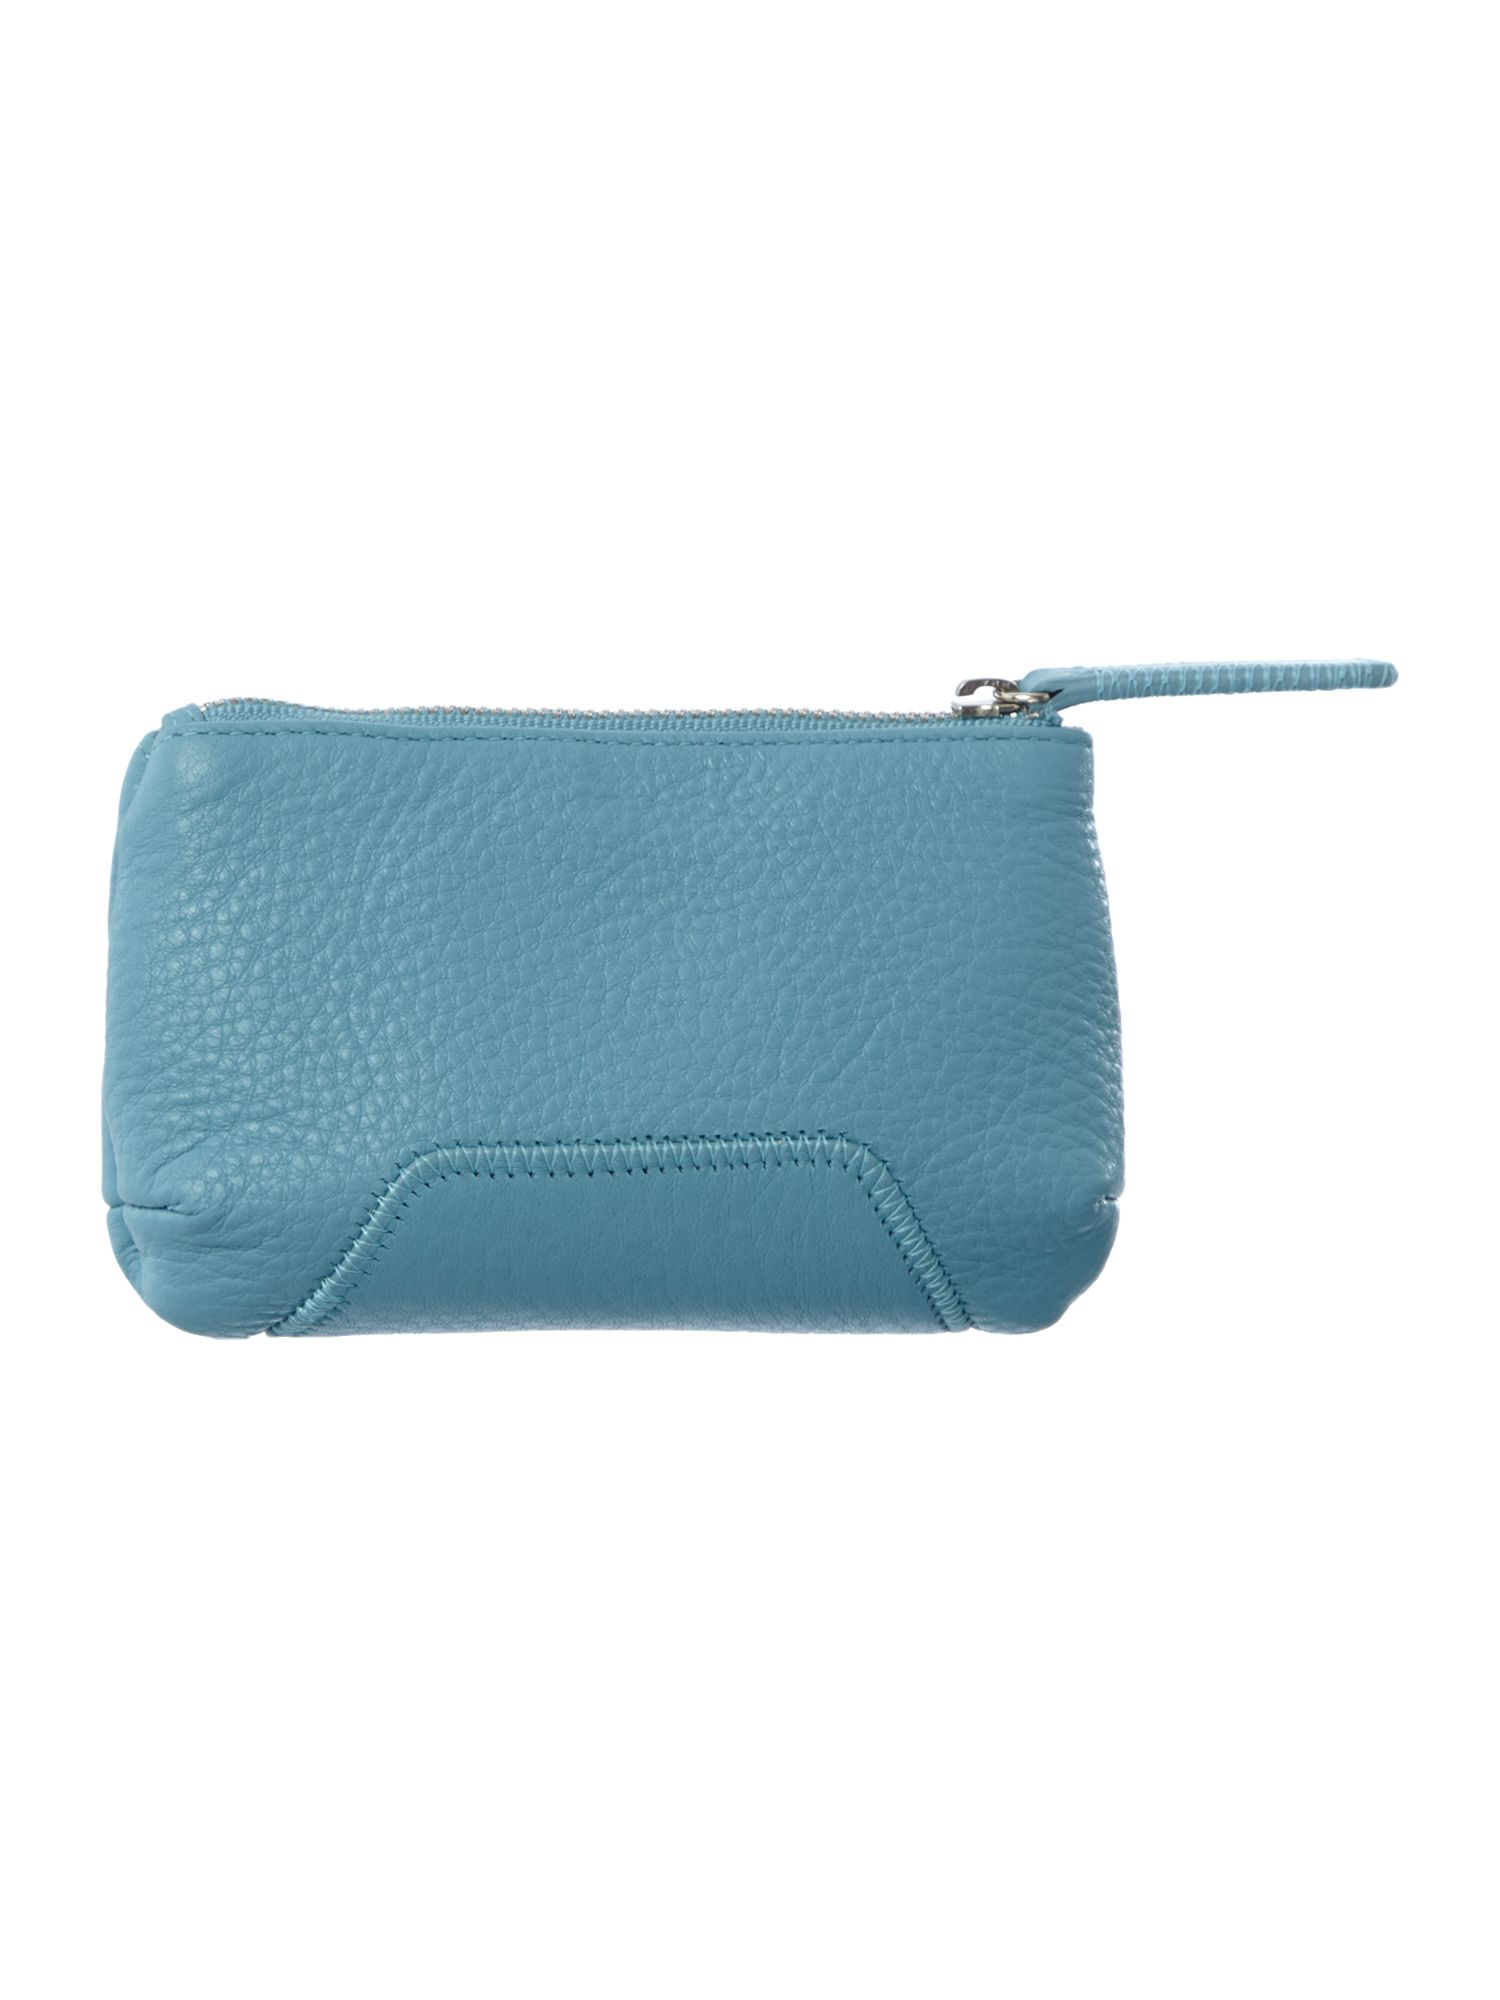 Dayton blue medium zip pouch purse